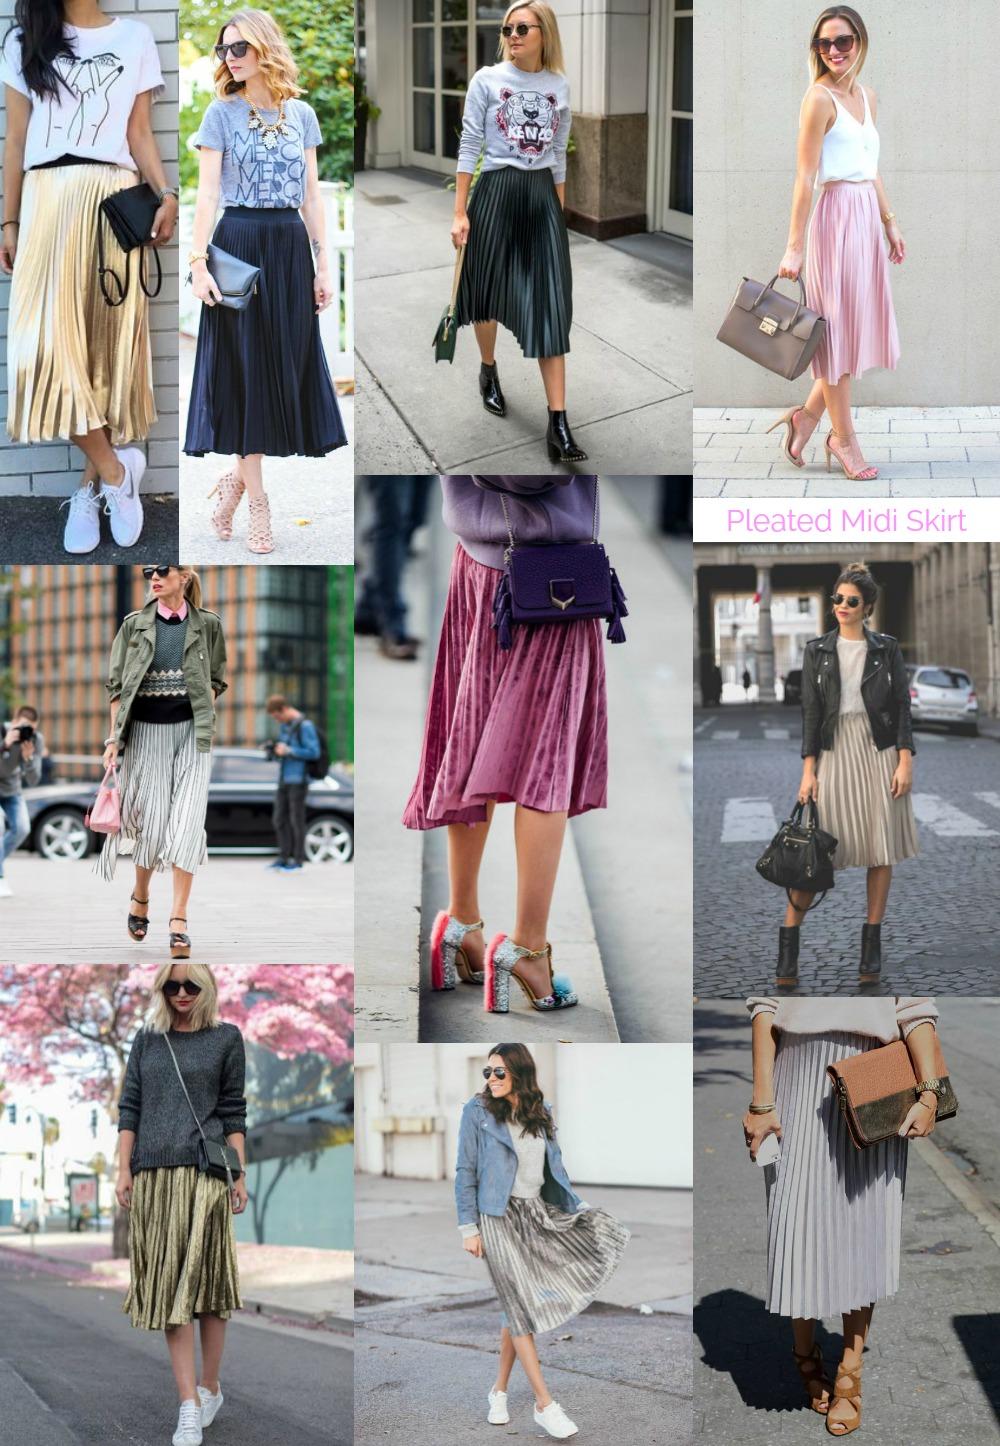 How to wear the Pleated Midi Skirt - inspiration